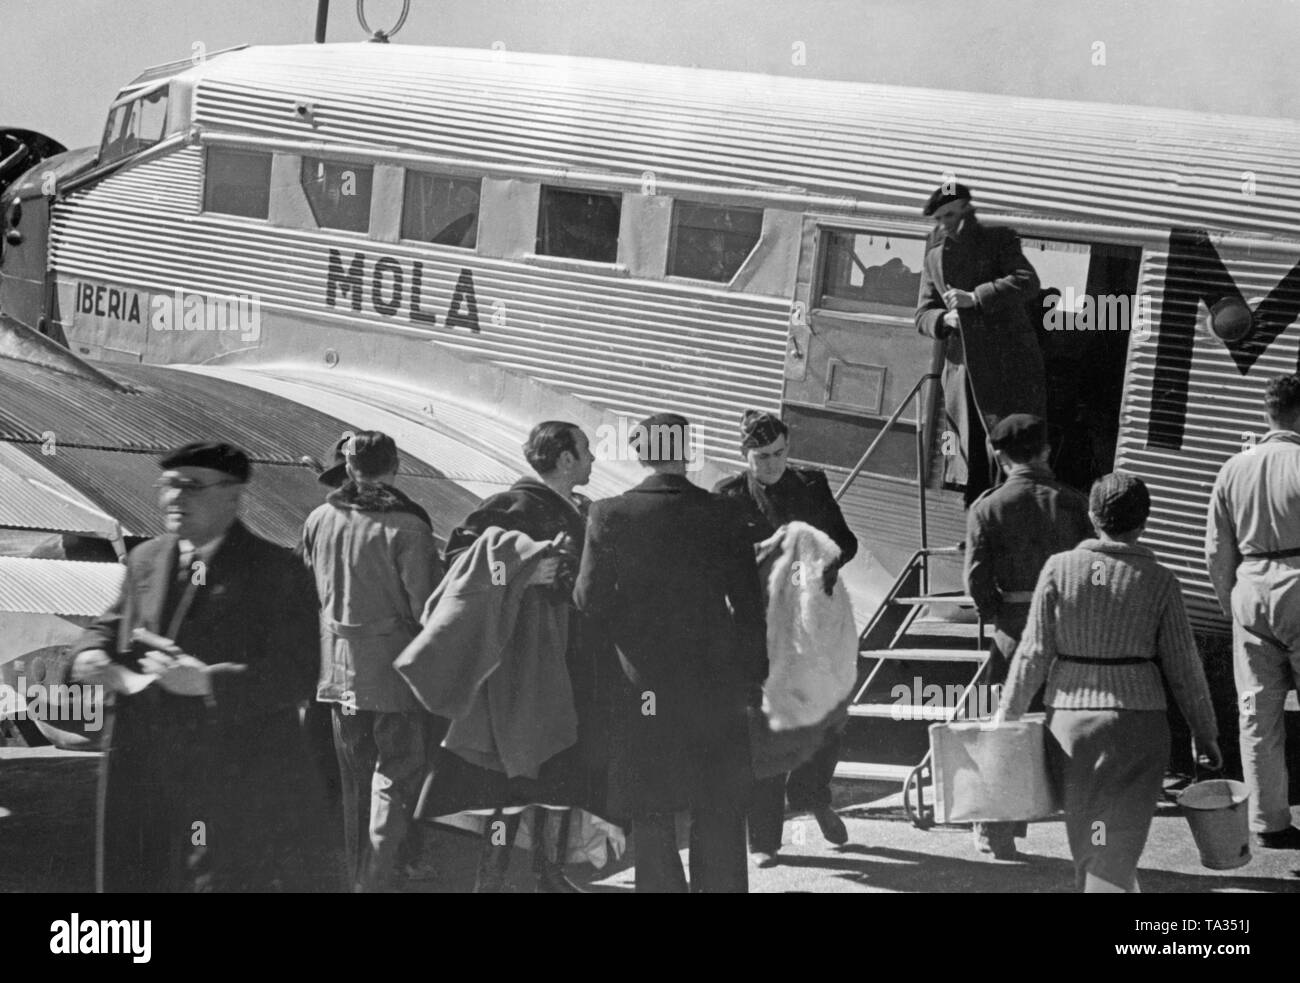 Photo of a German Junkers Ju 52 of the Spanish airline Iberia 1939 at the airport of Salamanca, Castile and Leon, Spain, through the windows of the new terminal. Soldiers and civilians are getting off the aircraft. The machine is named 'Mola', after general Emilio Mola Vidal (died 1937), one of the leaders of the uprising of General Francisco Franco. During the Civil War, the Deutsche Lufthansa and the Iberia (founded in 1927) carried out scheduled flights mostly with German pilots in the Spanish national zone from 1937. The aircraft were provided by the Deutsche Lufthansa AG. - Stock Image